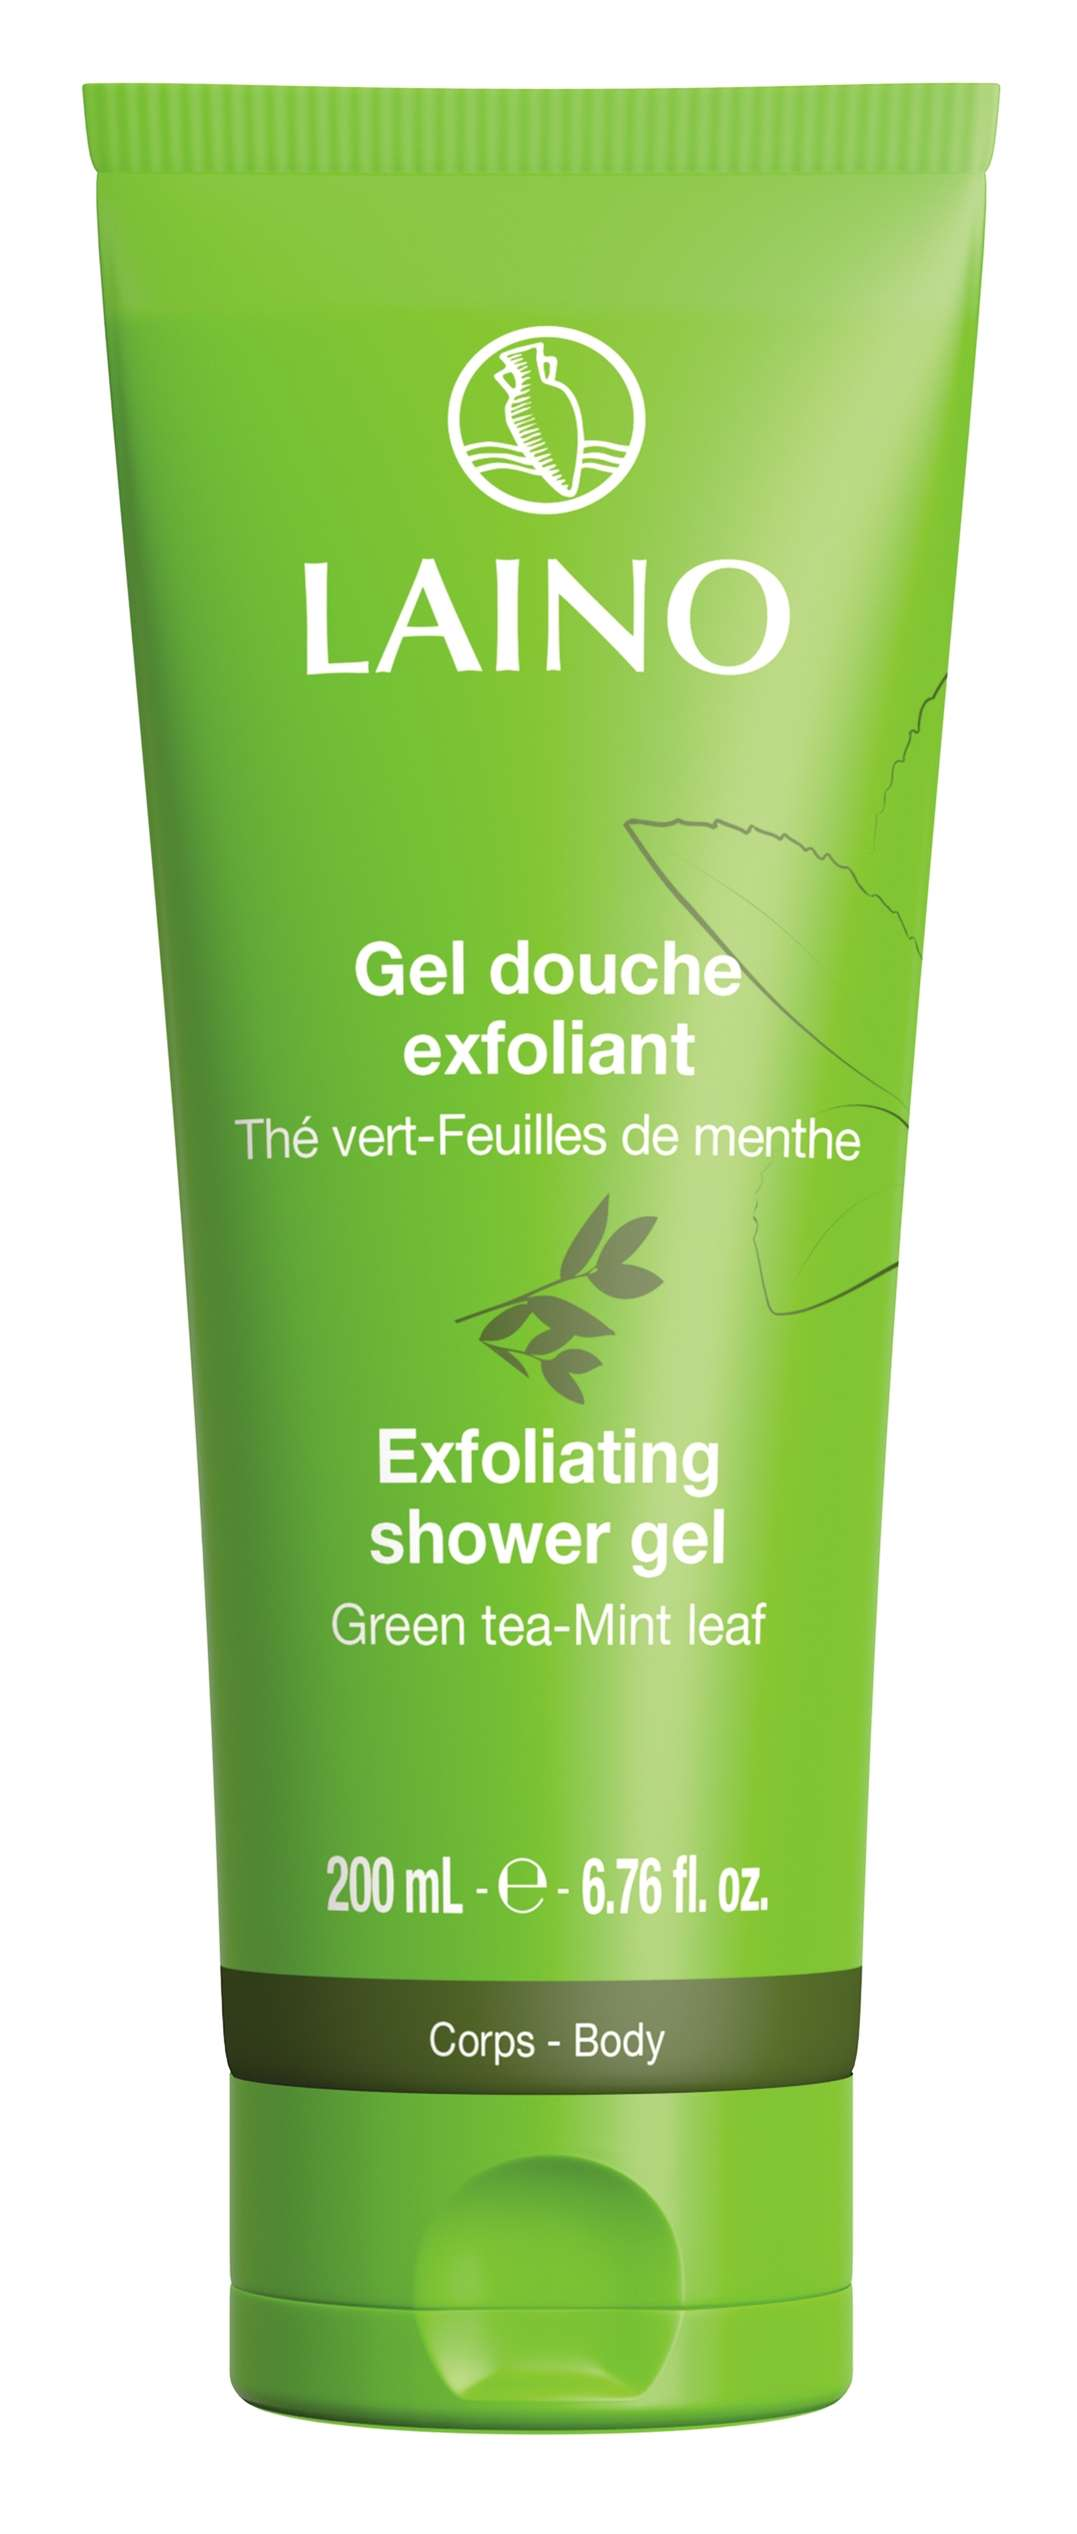 Exfoliating shower gel green tea / mint leaves